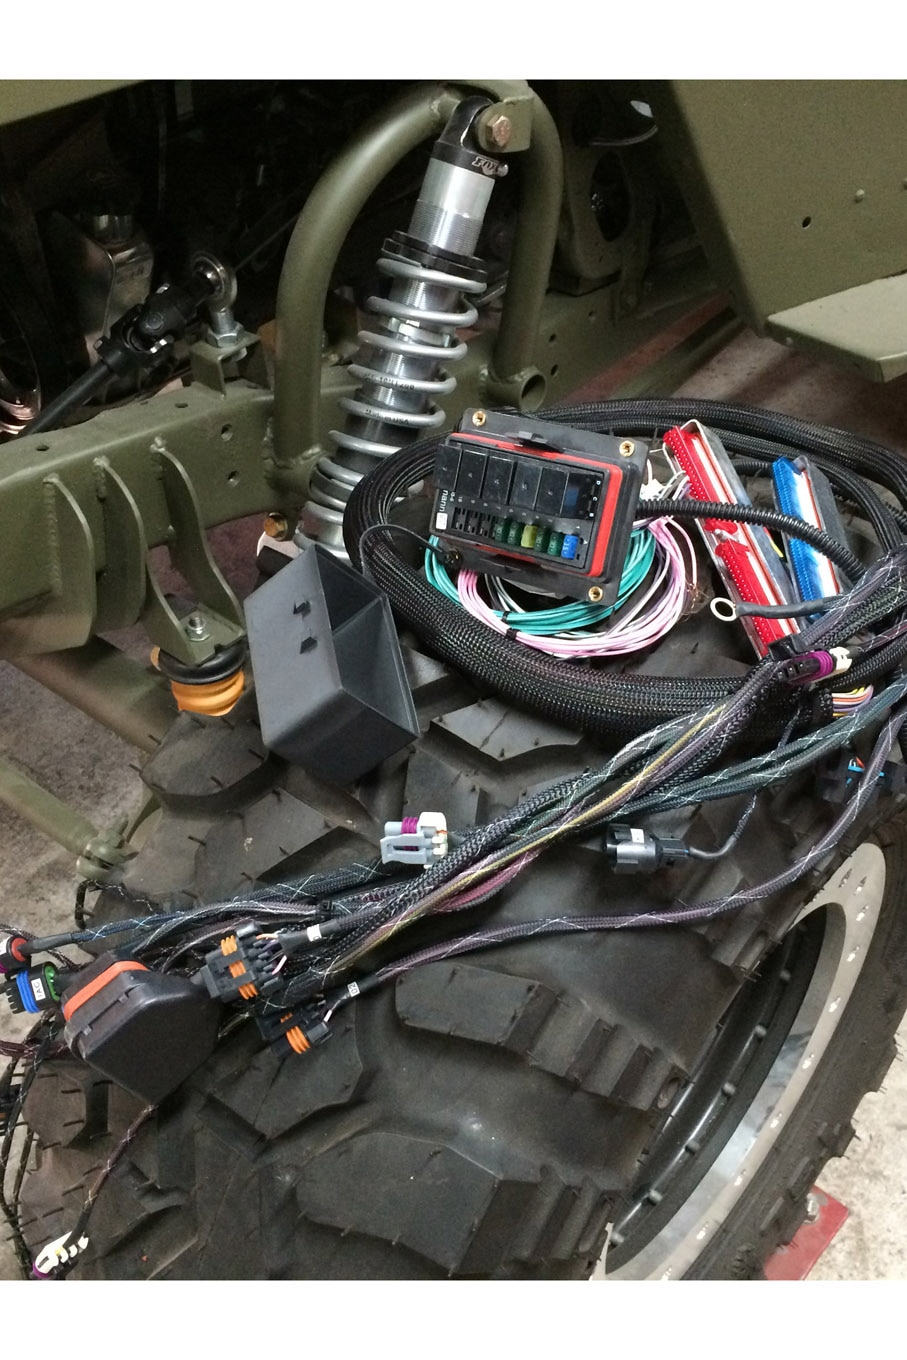 hight resolution of your jeep ford willys gpw garage project cappa wiring team 208 motorsports 4 3l v6 swap harness engine